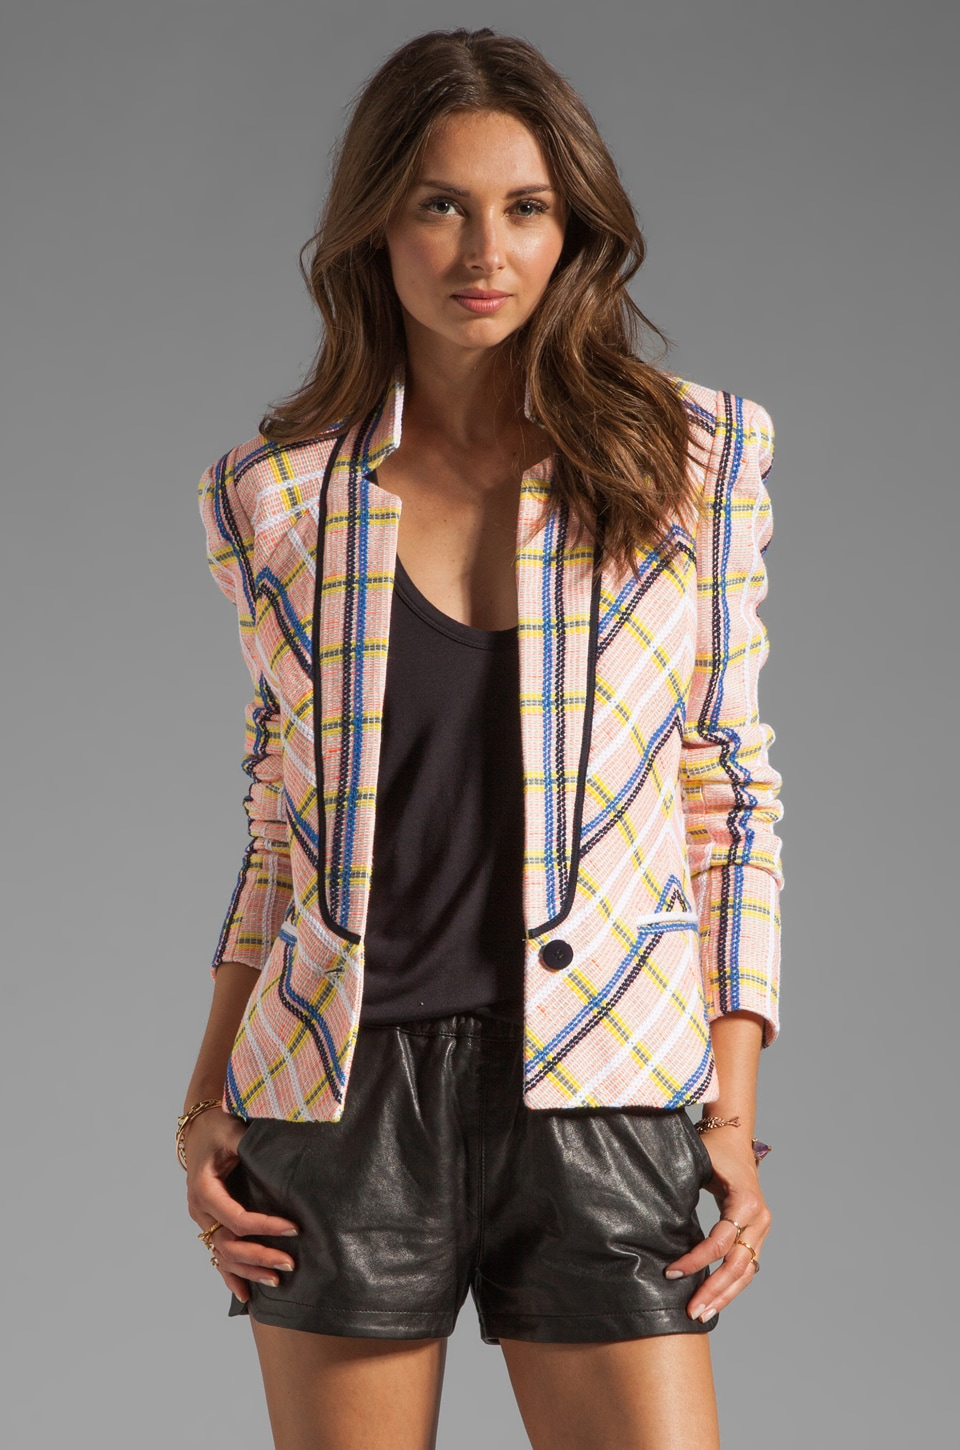 Rebecca Minkoff Haim Jacket in Rhubarb Multi